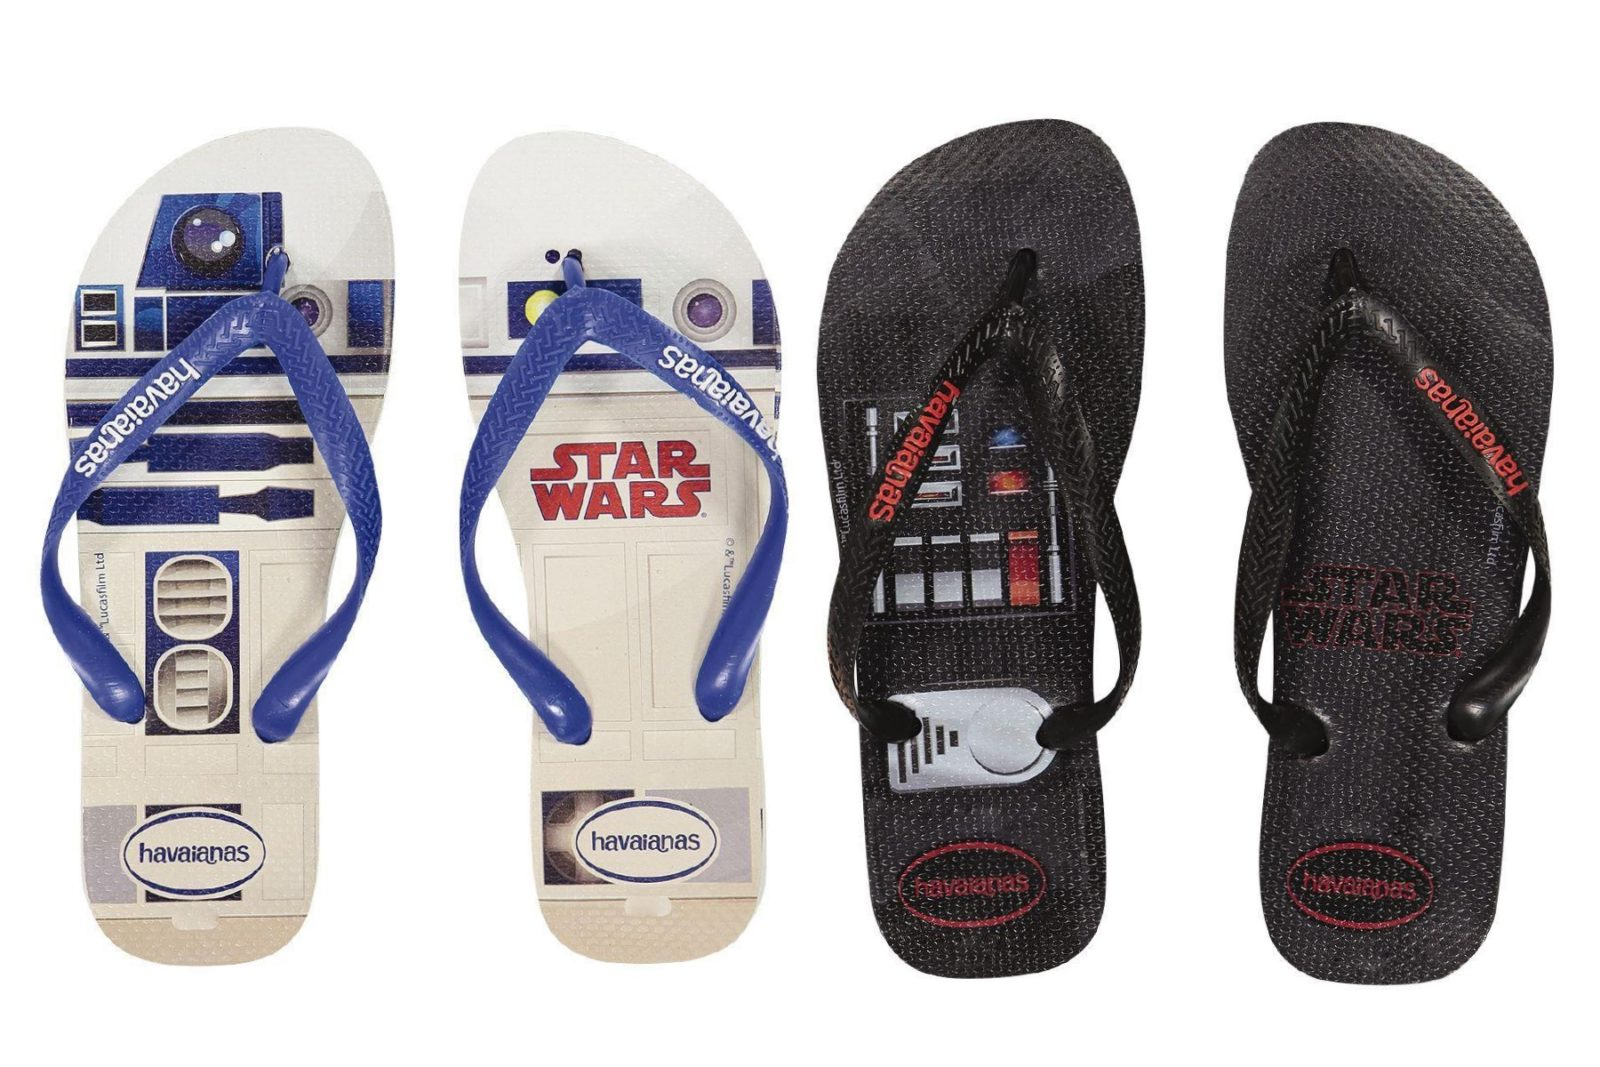 Star Wars Havaianas at The Warehouse